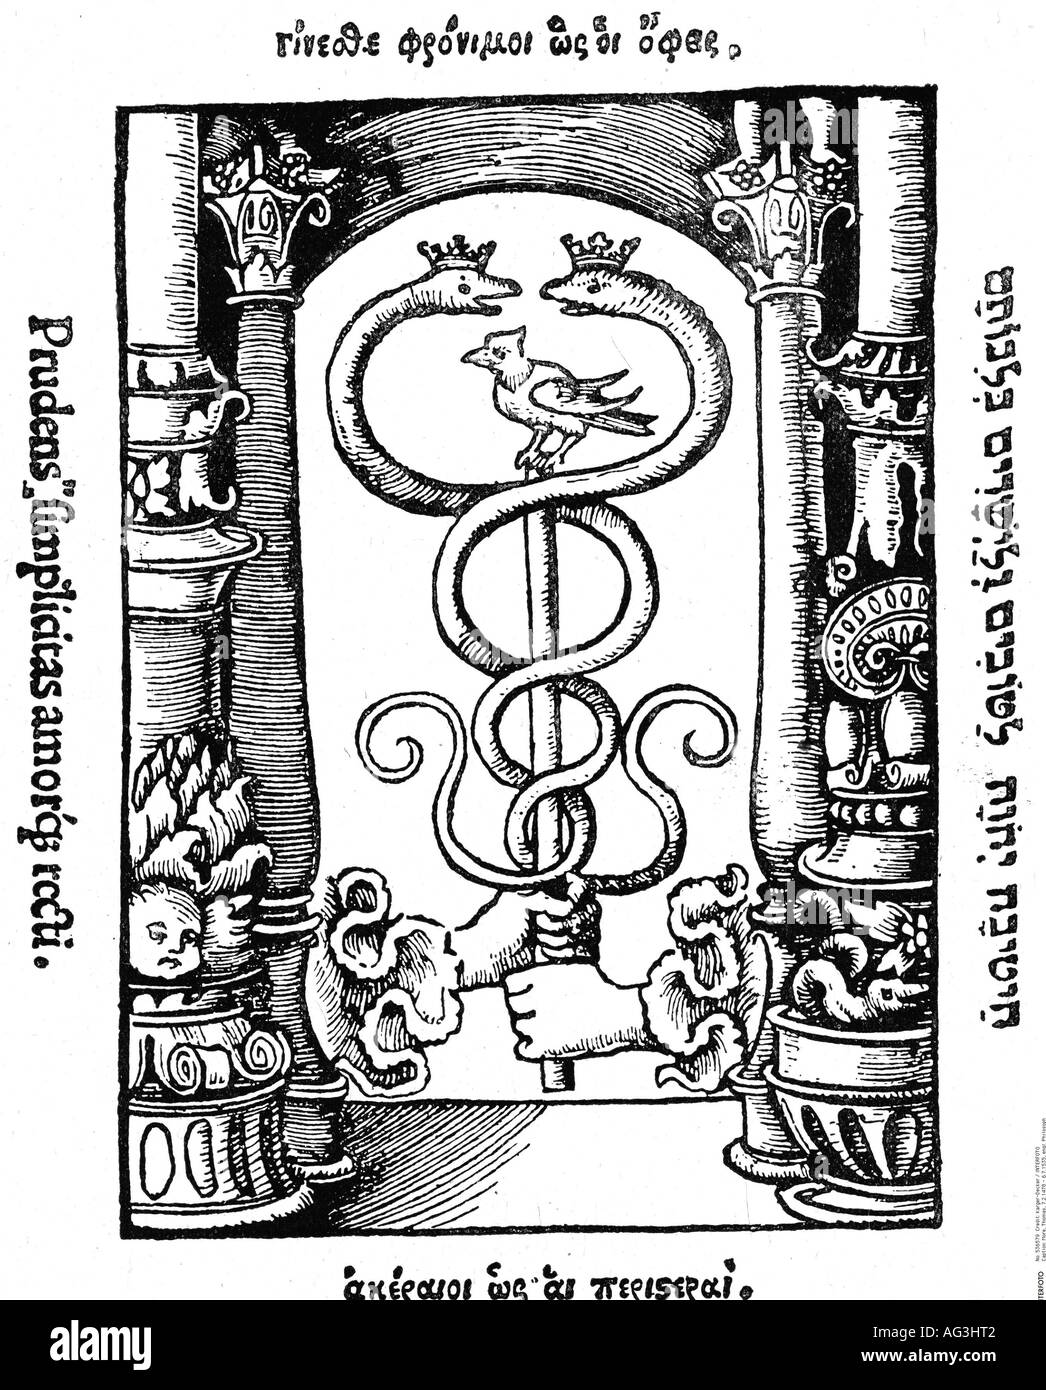 More, Thomas, 7.2.1478 - 6.7.1535, English philosopher und politician, works, 'Utopia', 1515, tailpiece, woodcut by Hans Holbein the Younger, Morus, literature, , Additional-Rights-Clearances-NA - Stock Image